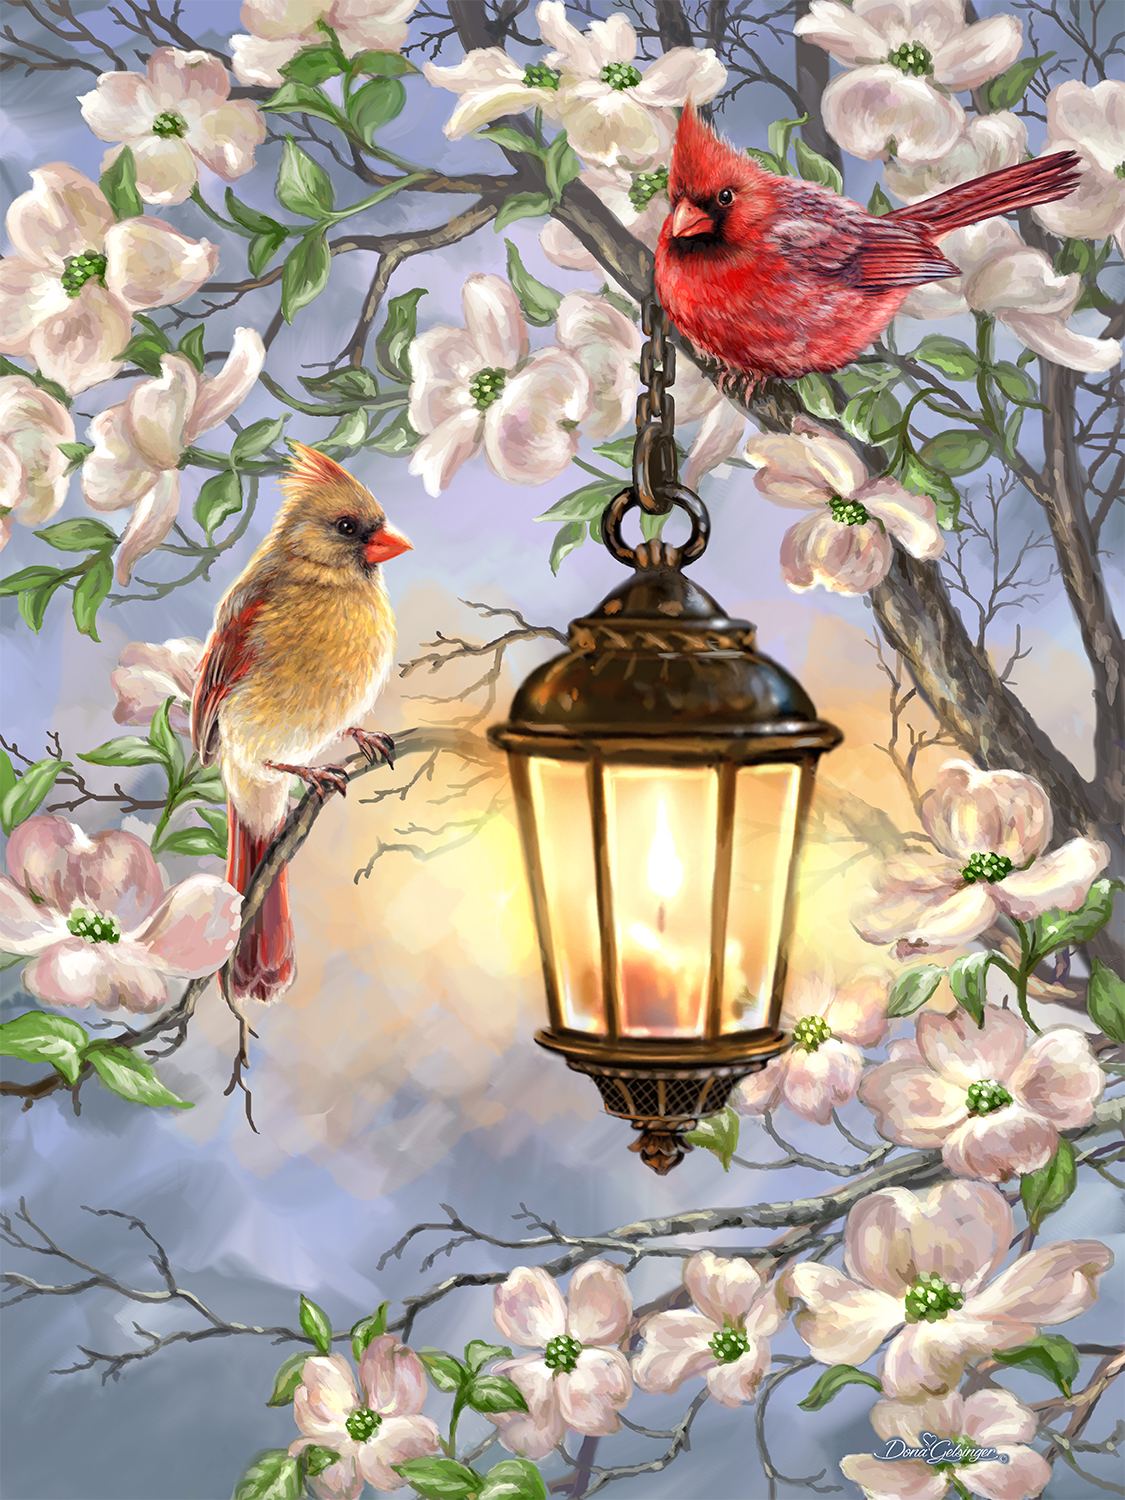 Morning Serenade 36 Piece Made in USA Large 23.5 by 18 Springbok Puzzles- Alzheimer /& Dementia Jigsaw Puzzles